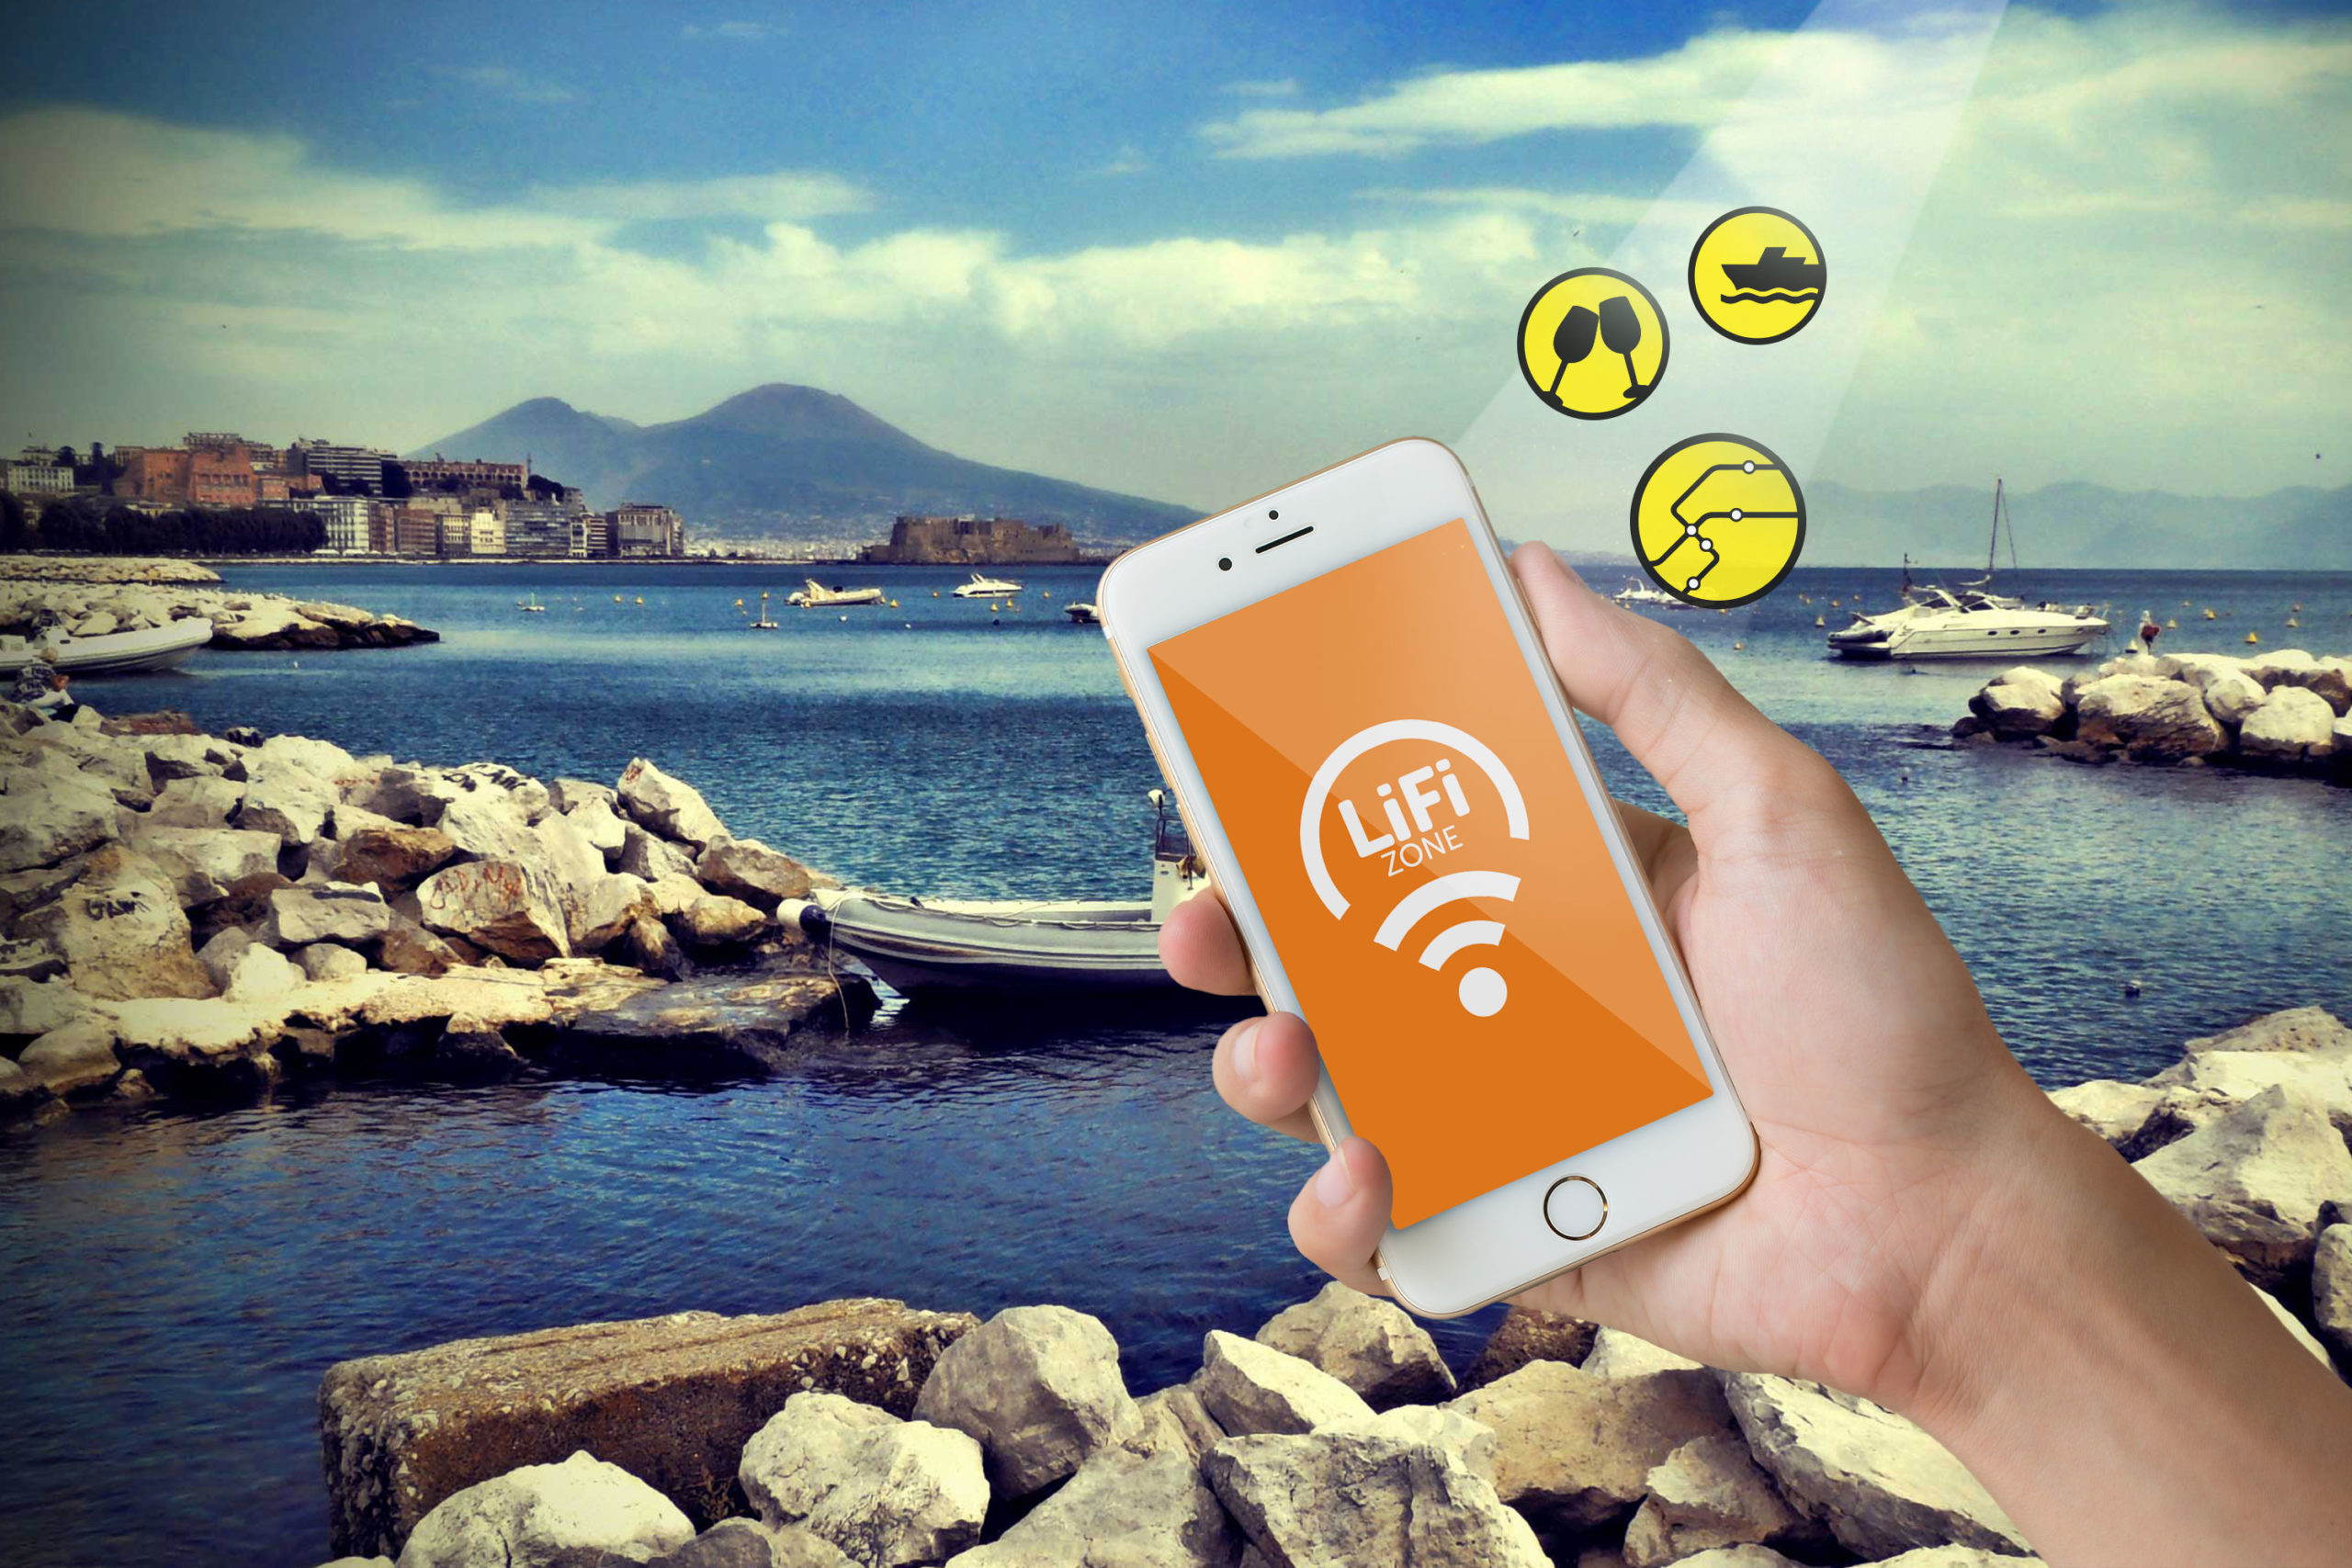 LiFi Zone Napoli and Vesuvius